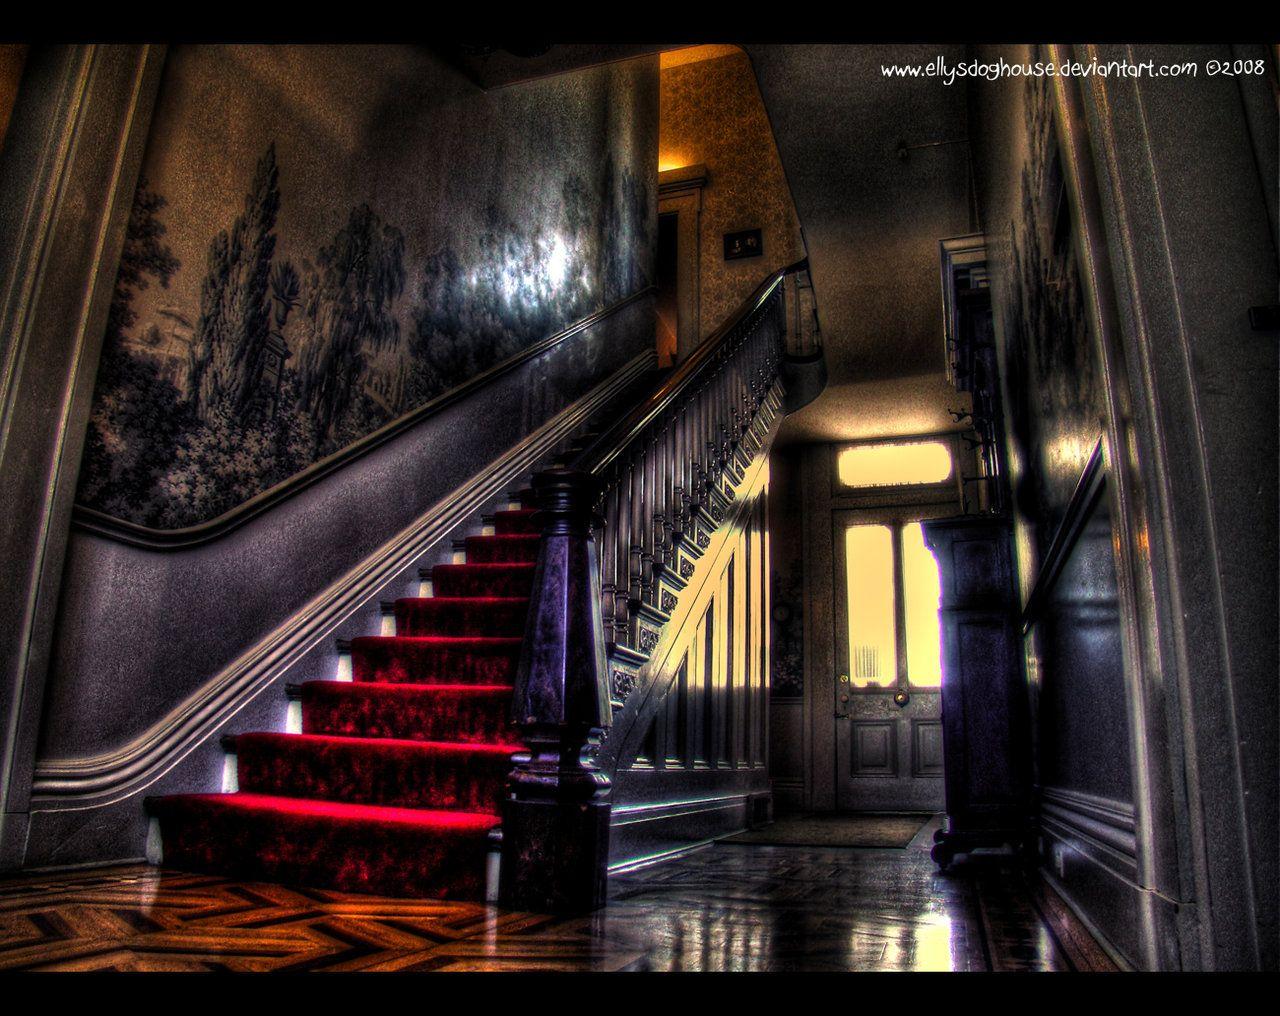 Gothic victorian living room - Grand Staircase Chatillon Demenil Mansion Entry Foyer By Ellysdoghouse On Deviantart